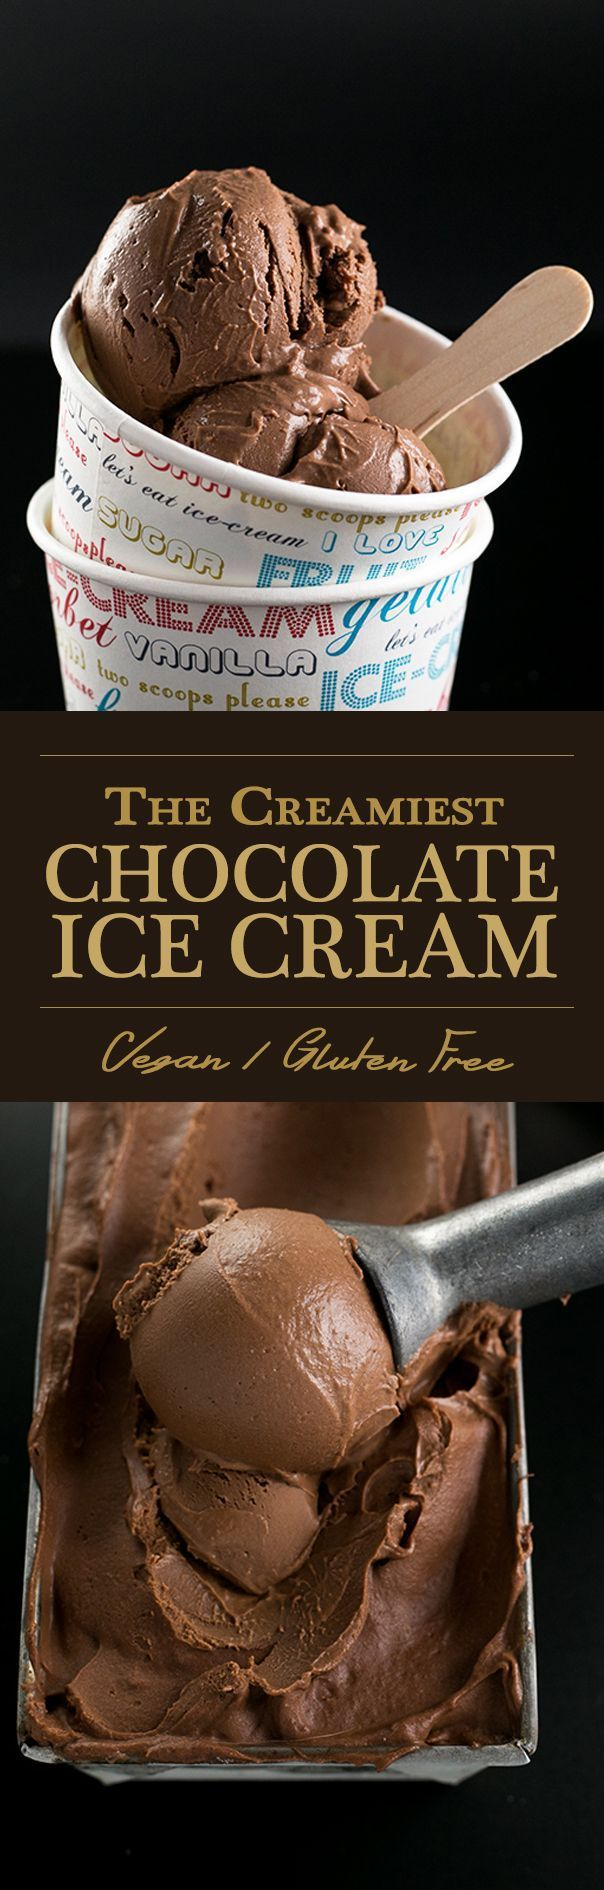 The Creamiest Vegan Chocolate Ice Cream - homemade, ultra creamy and scoopable chocolate ice cream made with cashews and coconut milk.